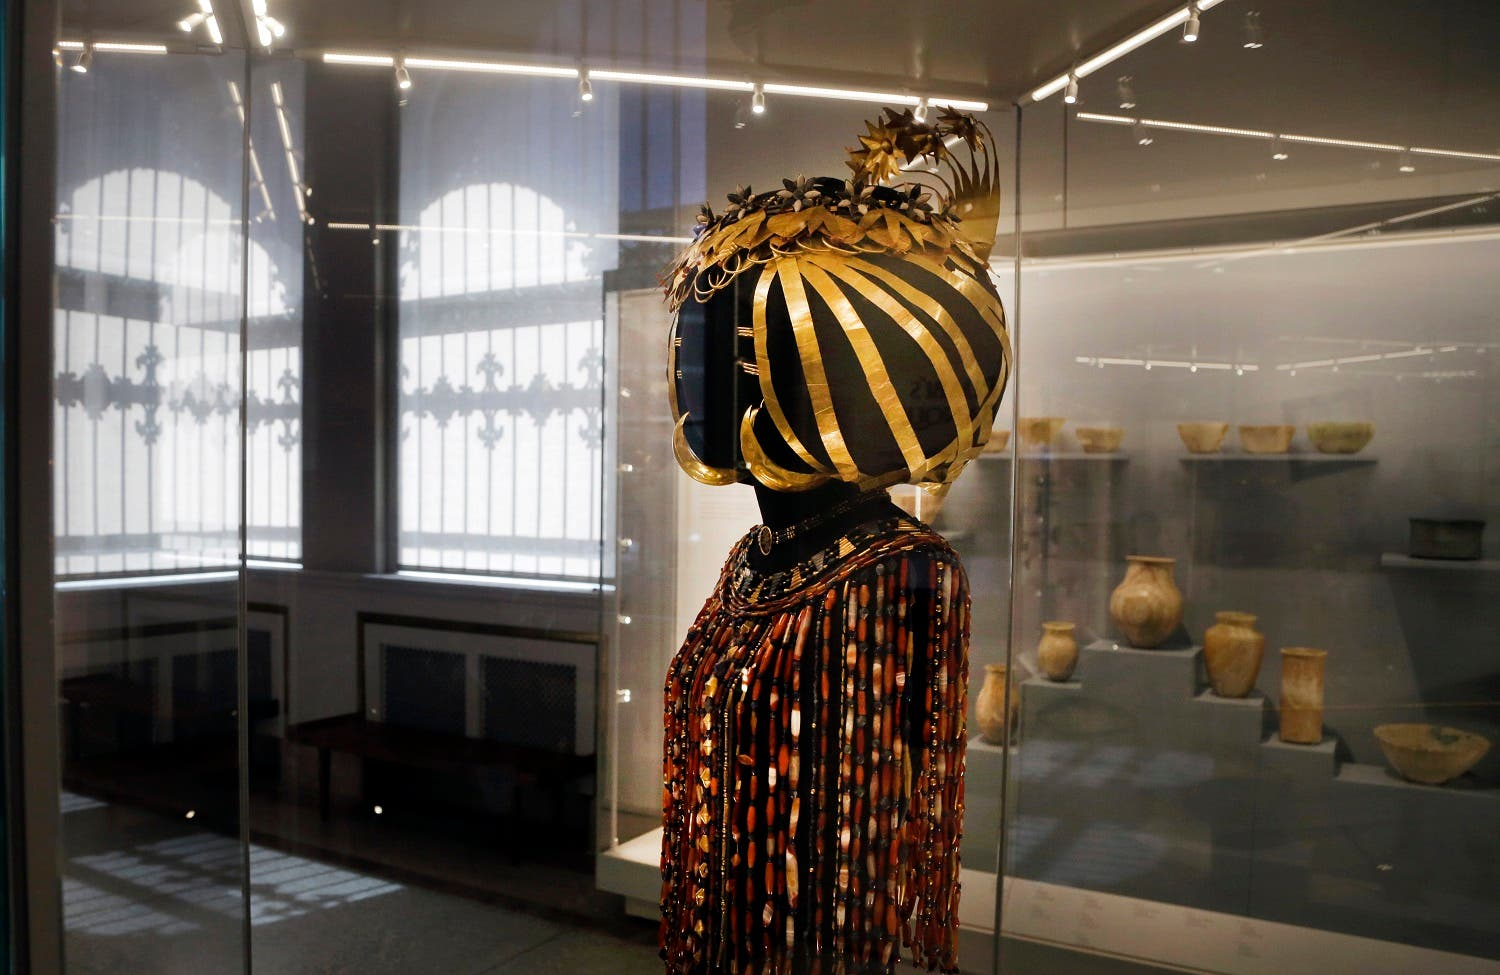 The headdress and jewelry of Queen Puabi dating to some 4,500 years ago, is displayed at the Middle East gallery in the Penn Museum in Philadelphia. (AP)